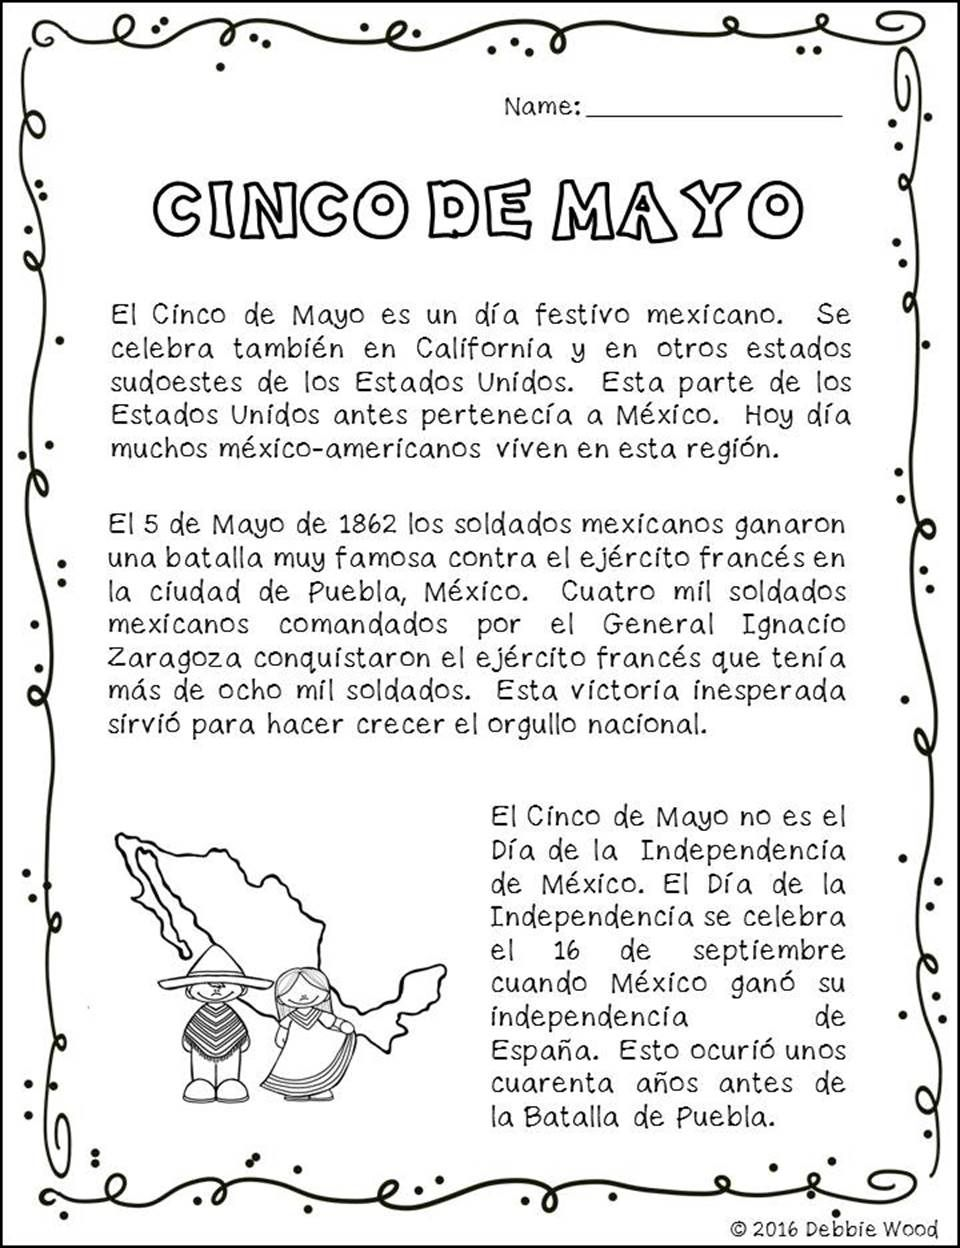 medium resolution of https://www.contohkumpulan.com/cinco-de-mayo-comprehension-worksheet-second-grade-pinterest-spanish-comprehension-and/